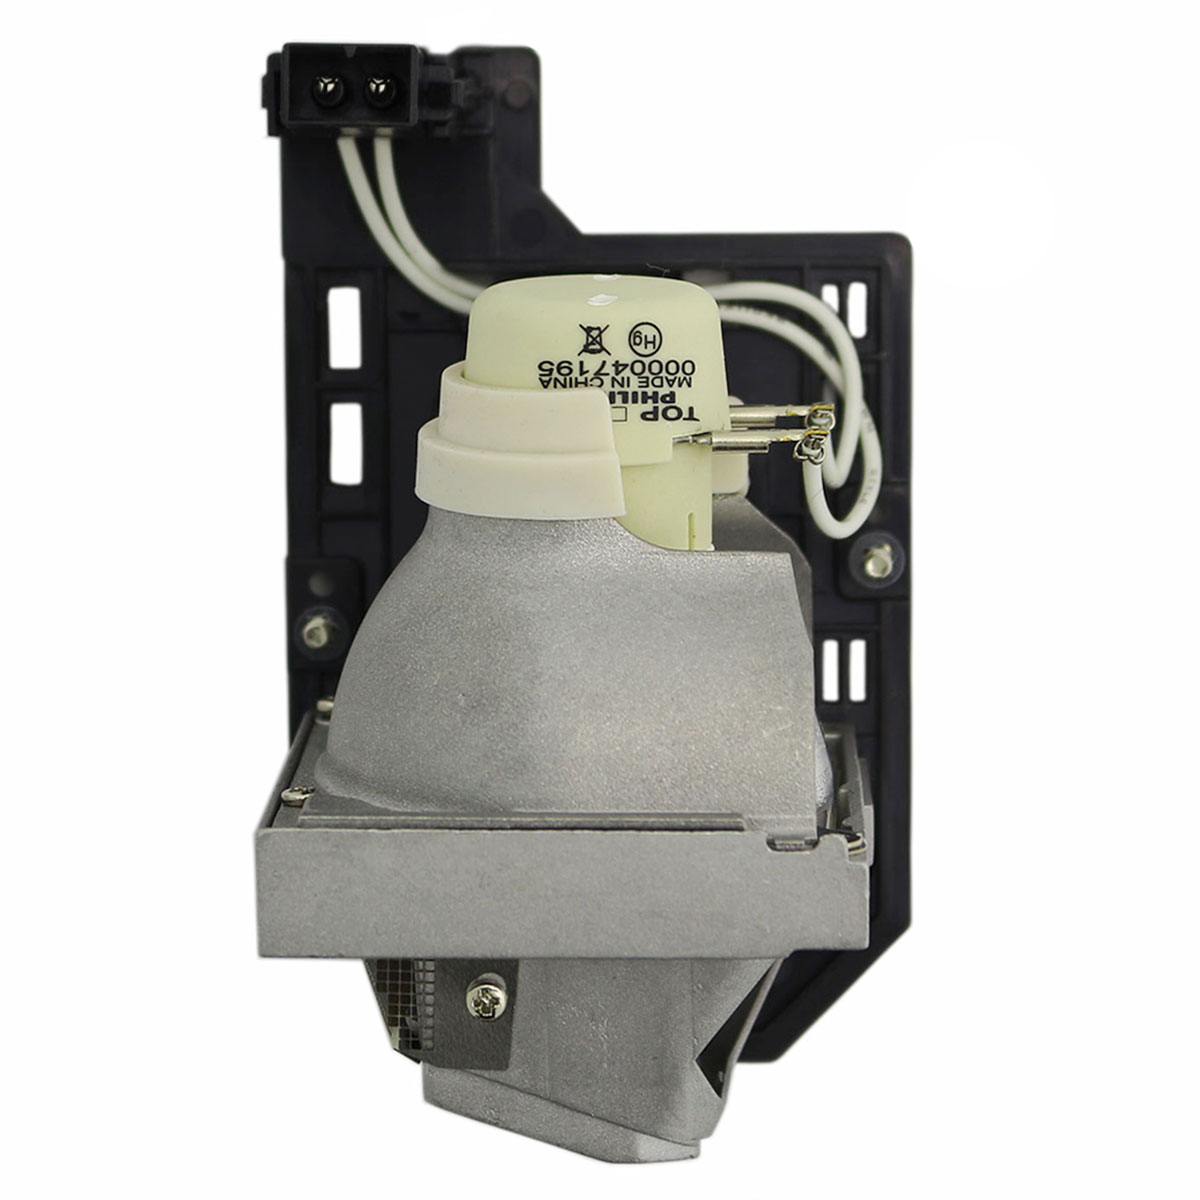 Original Philips Projector Lamp Replacement for Optoma EC300ST (Bulb Only) - image 2 of 5